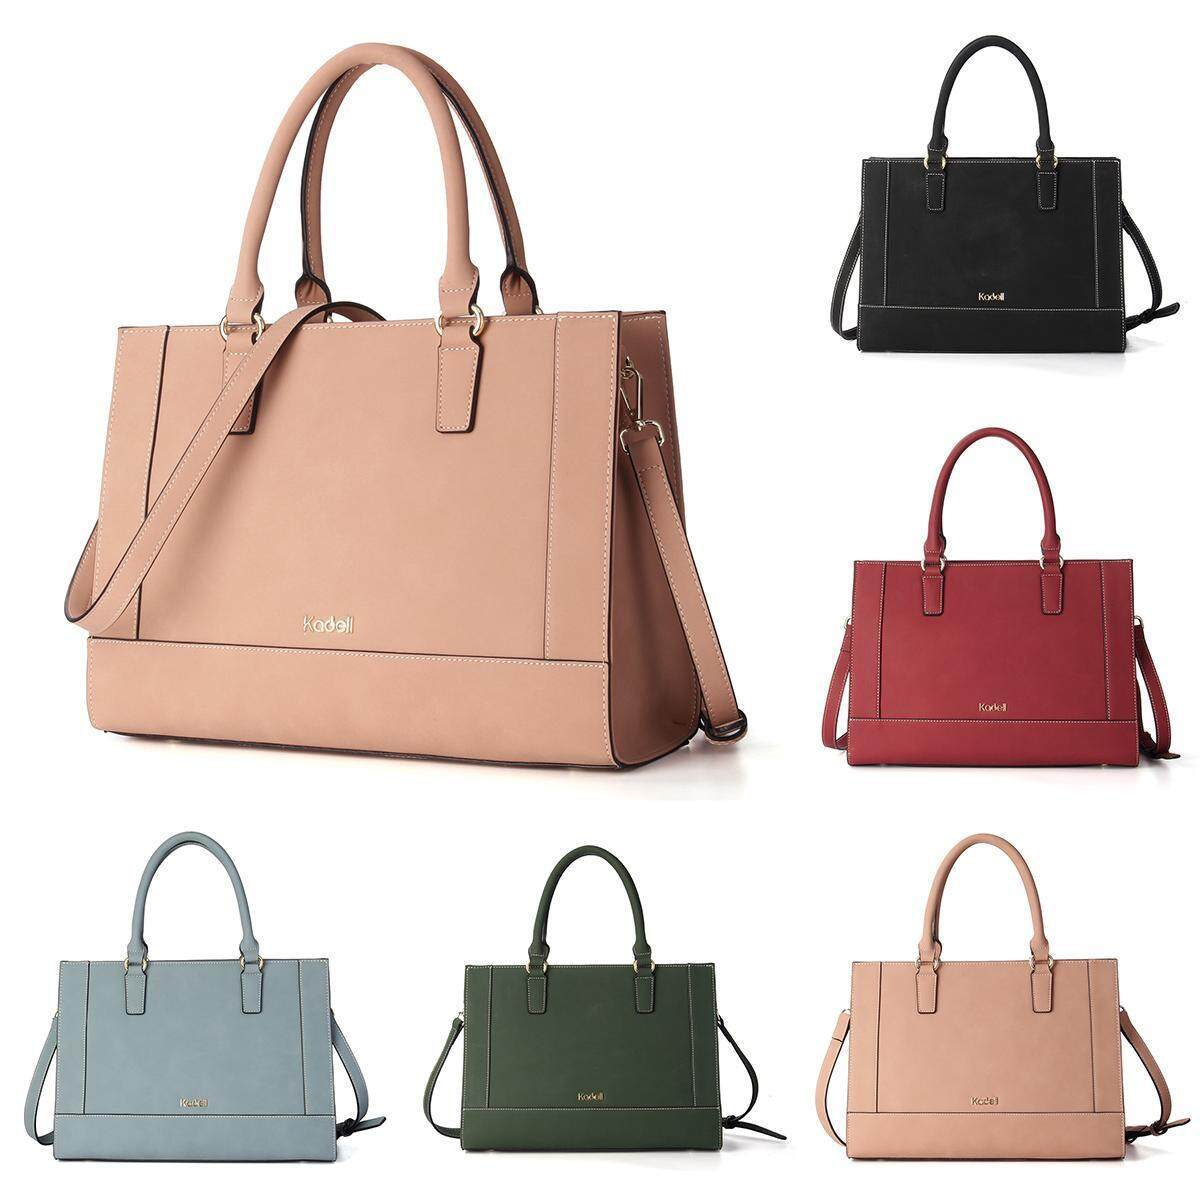 3ccb9eb996ab Product details of Kadell spring simple style Cambridge bag large capacity  matte leather ladies handbag